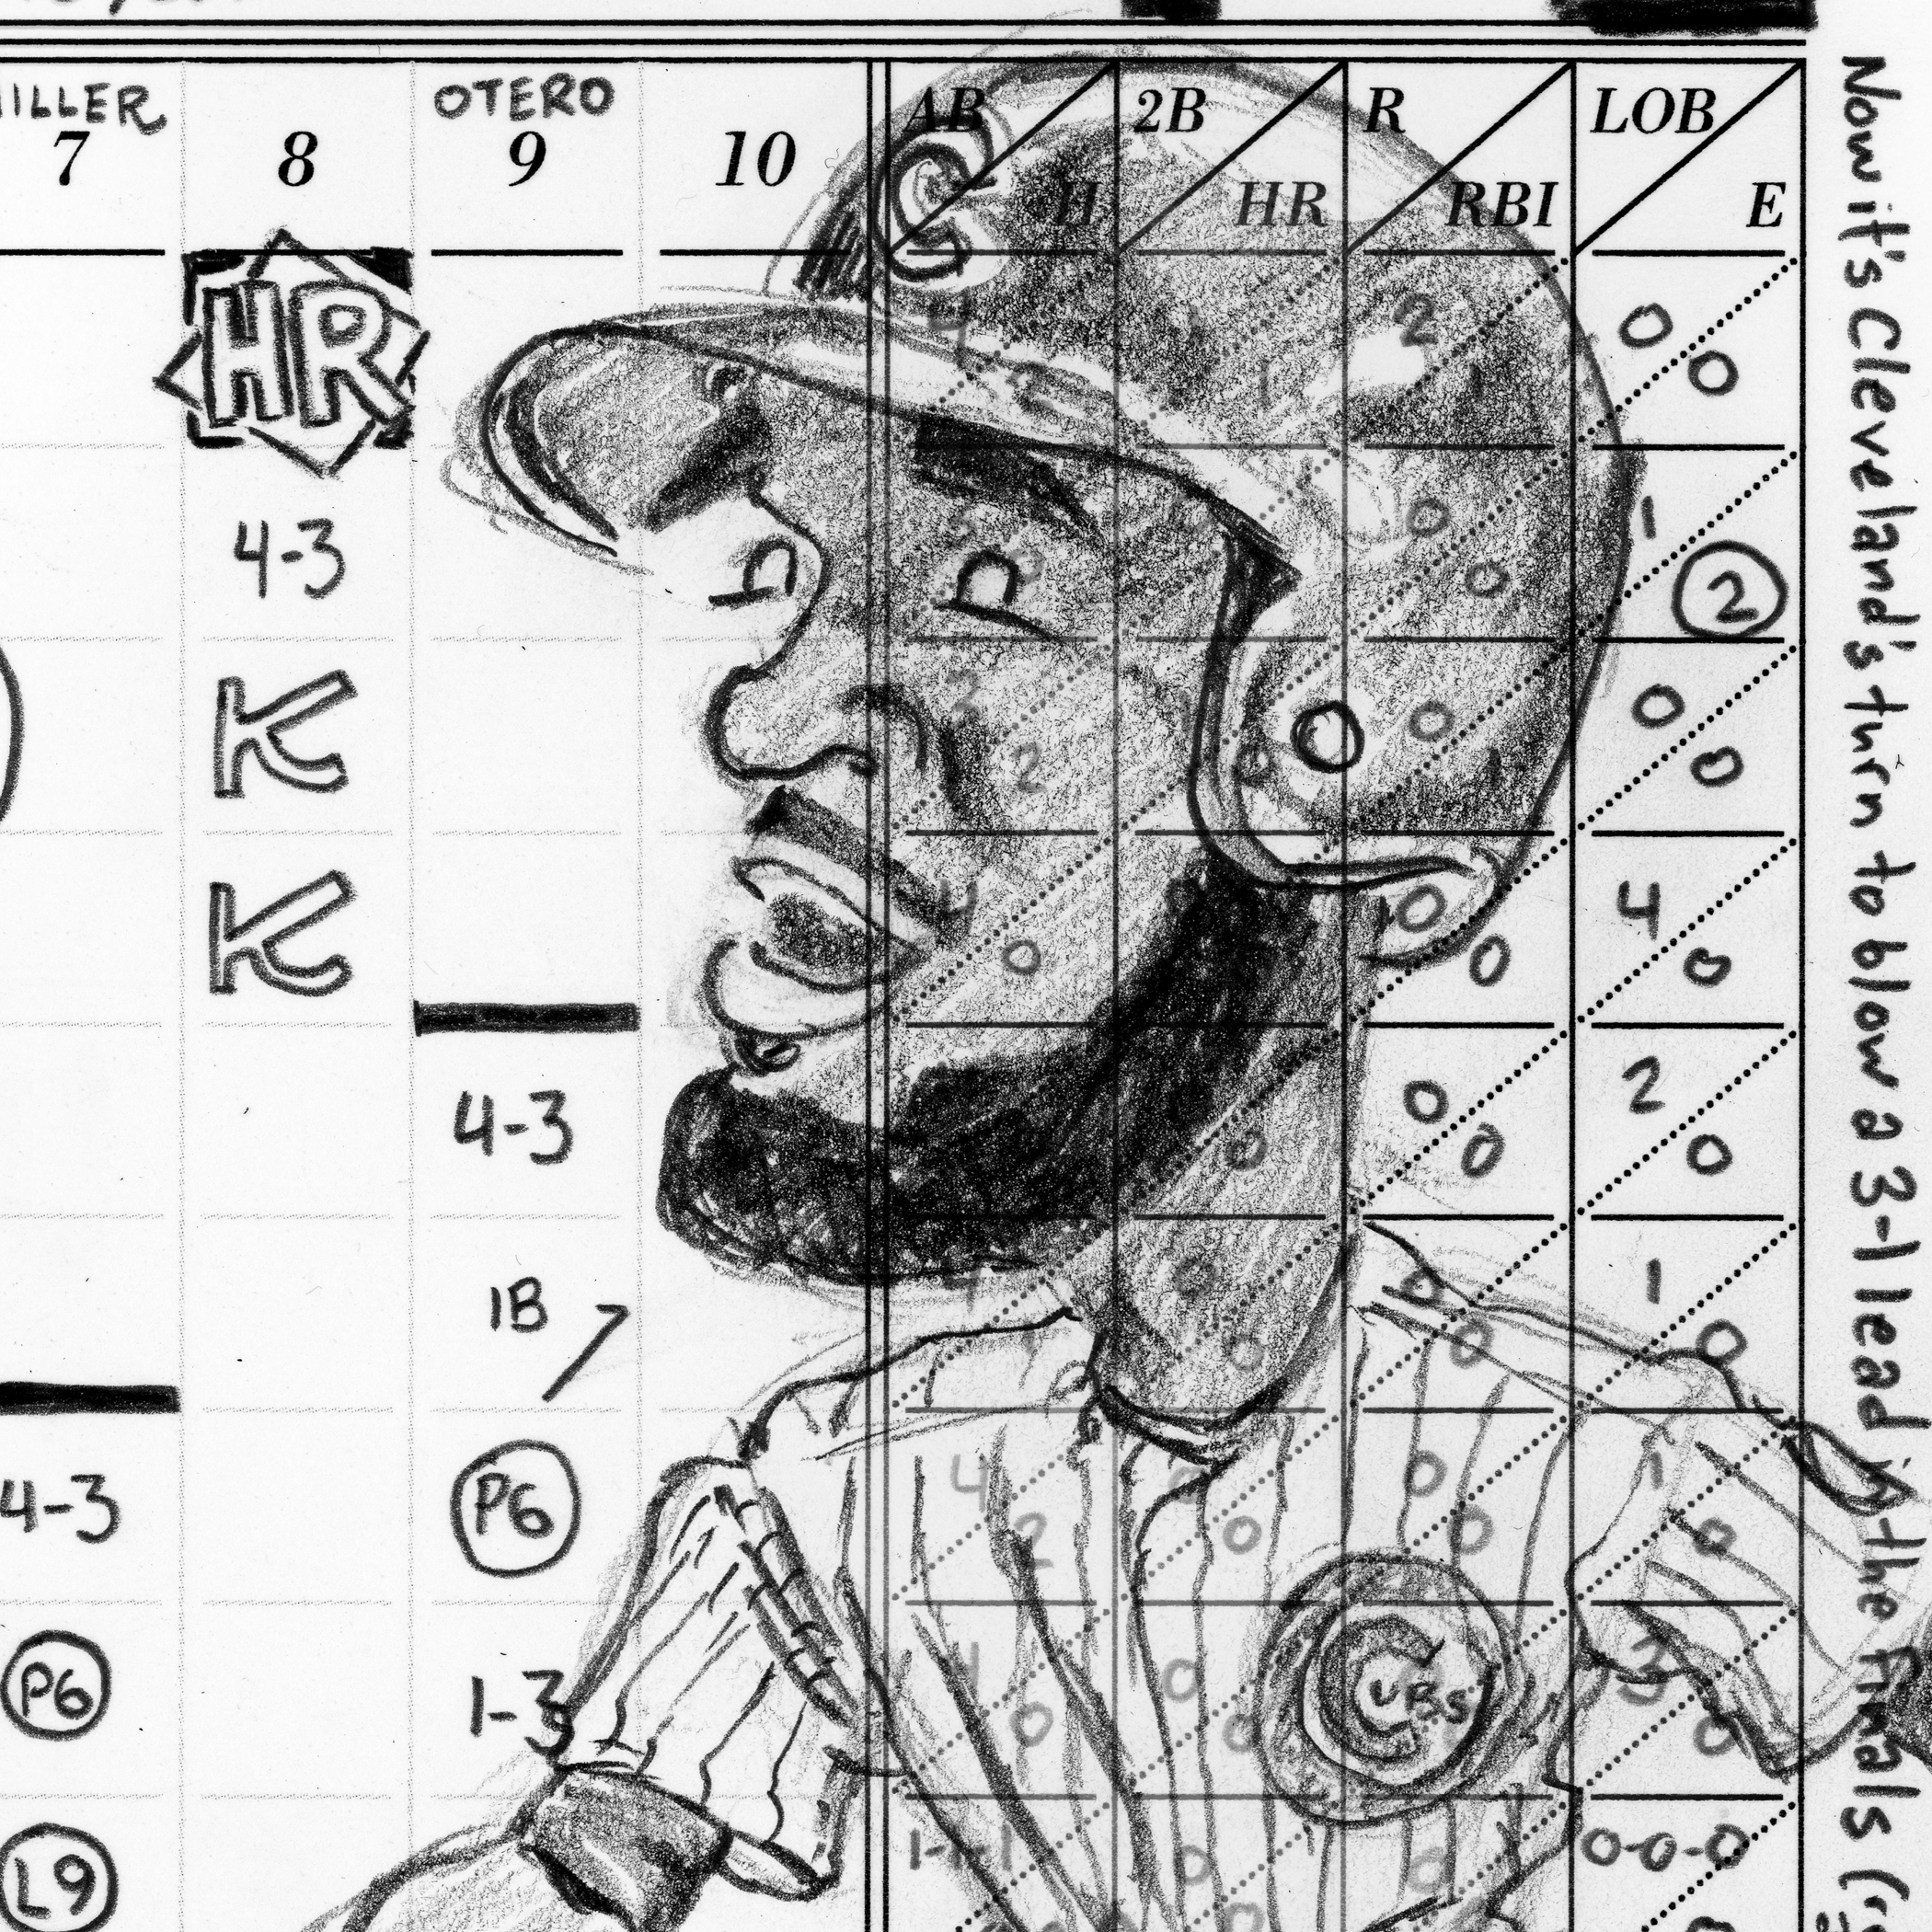 Game 4 scorecard for 2016 World Series